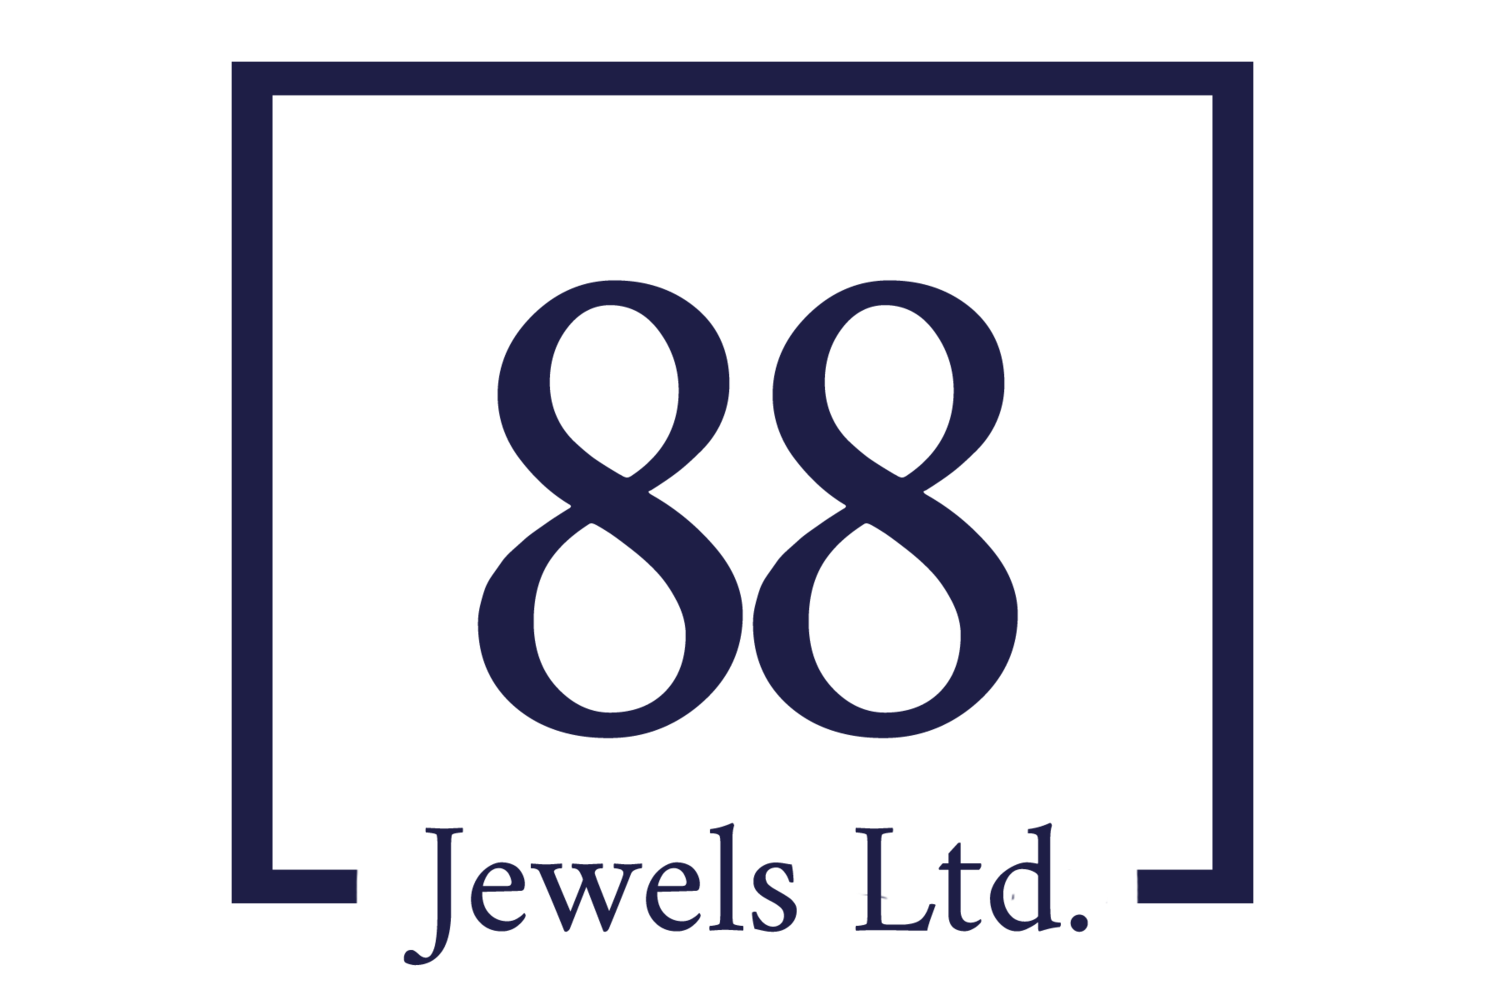 88Jewels Ltd.